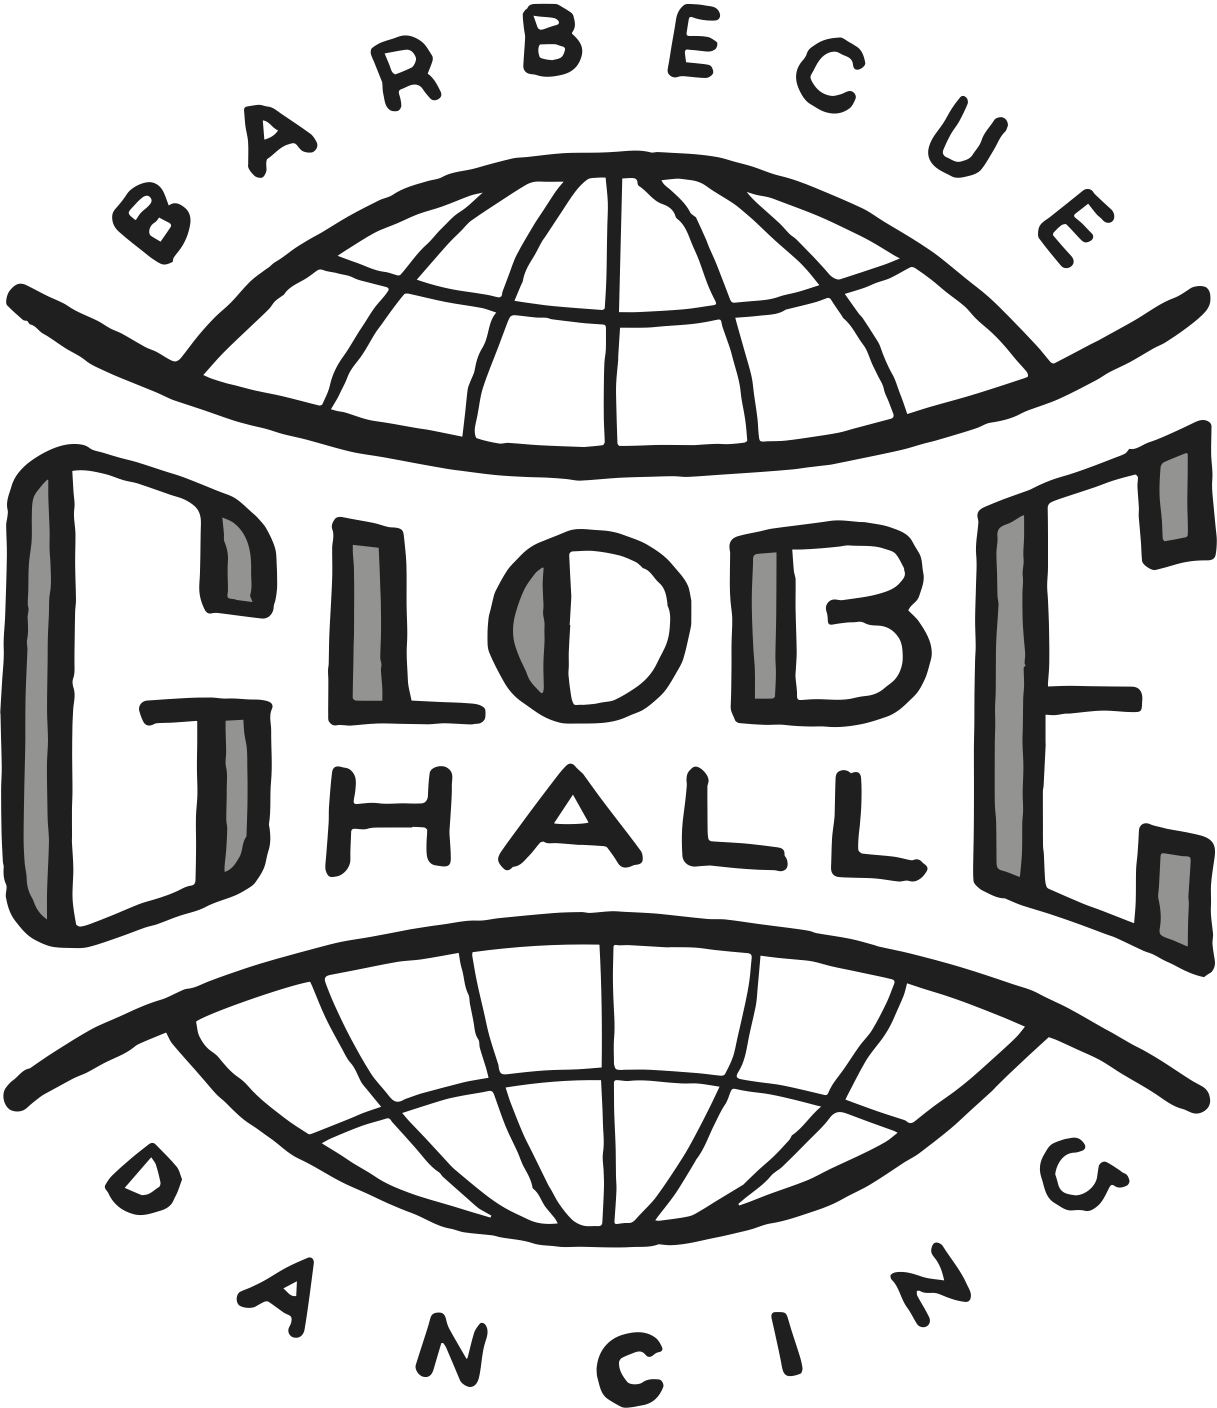 1217x1408 Globe Hall Barbecue Amp Dancing